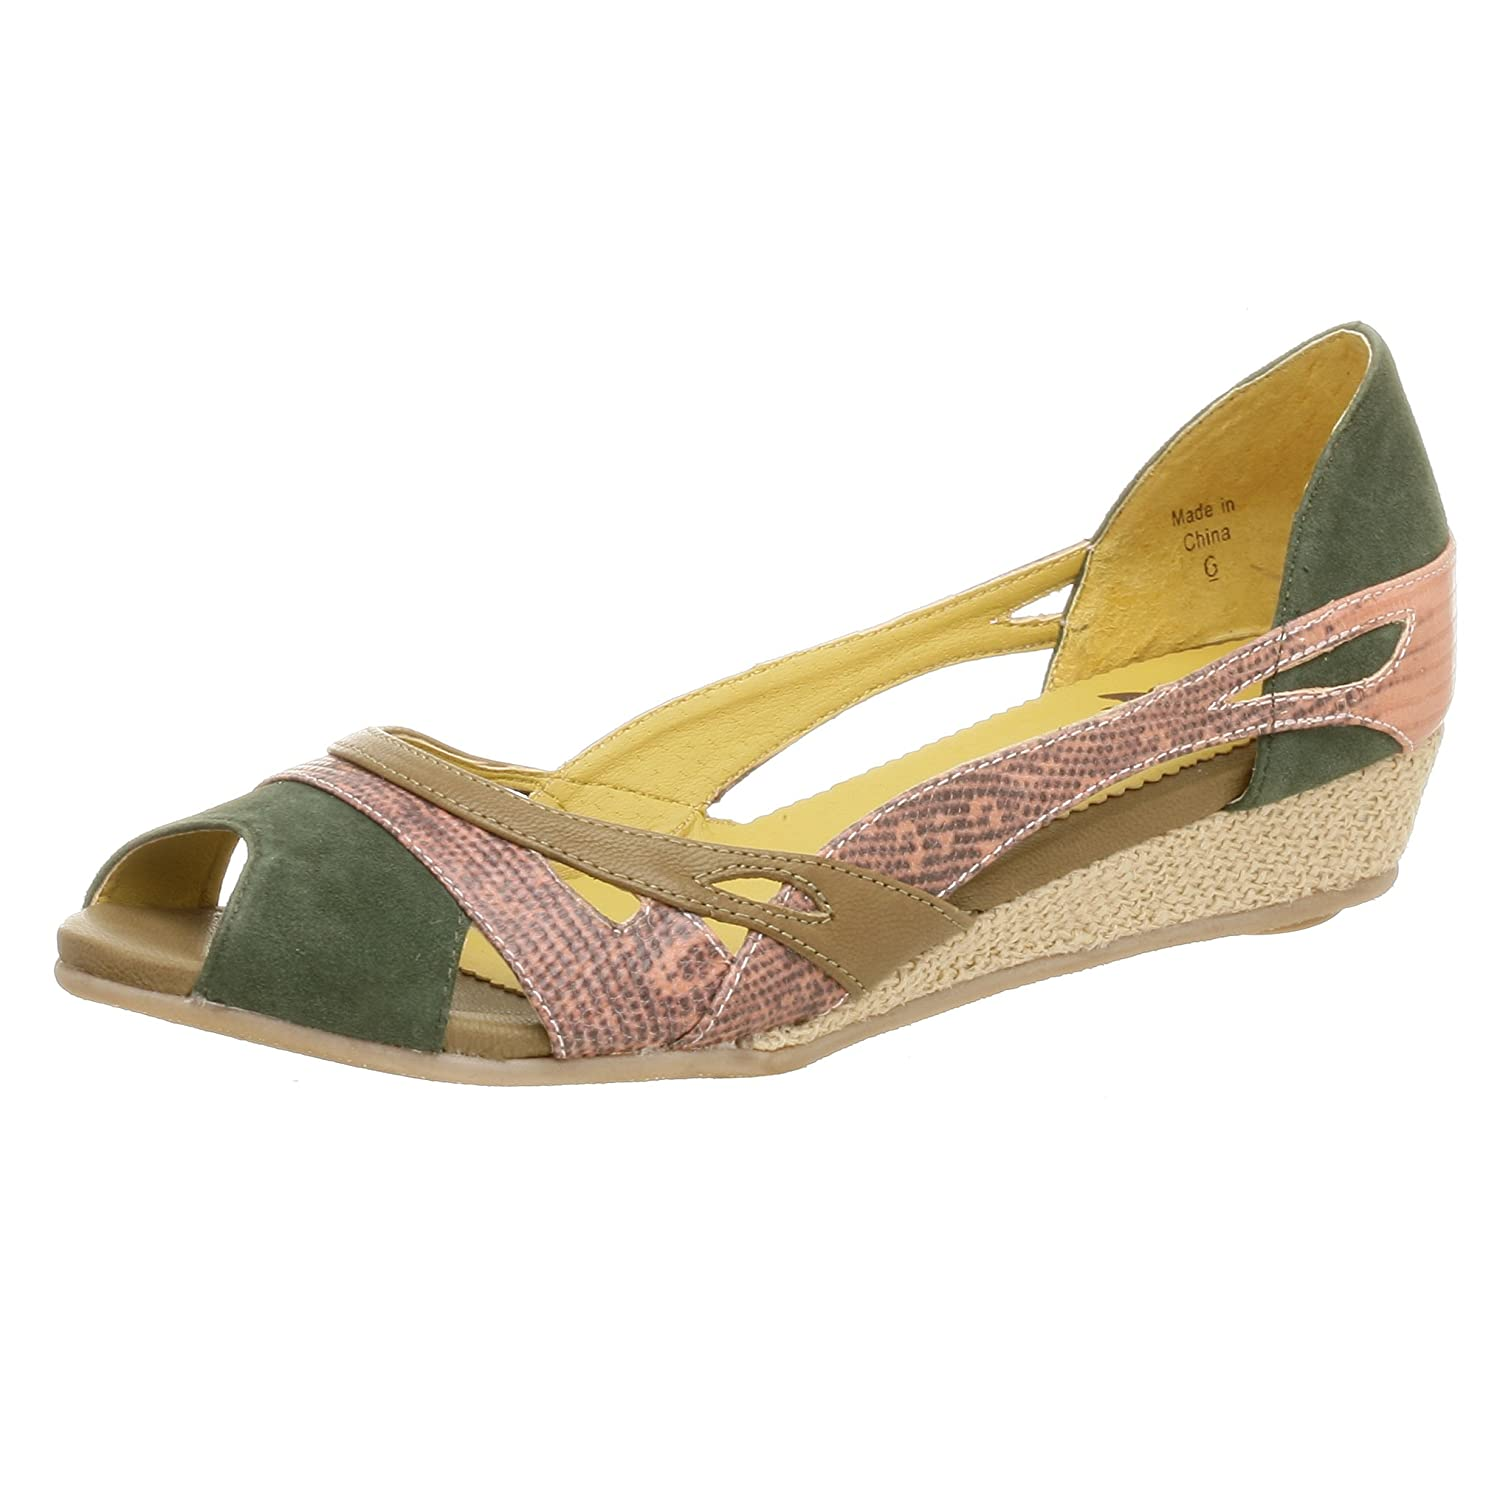 Endless.com: farylrobin Women's Betty Low Wedge: Flats & Loafers from endless.com